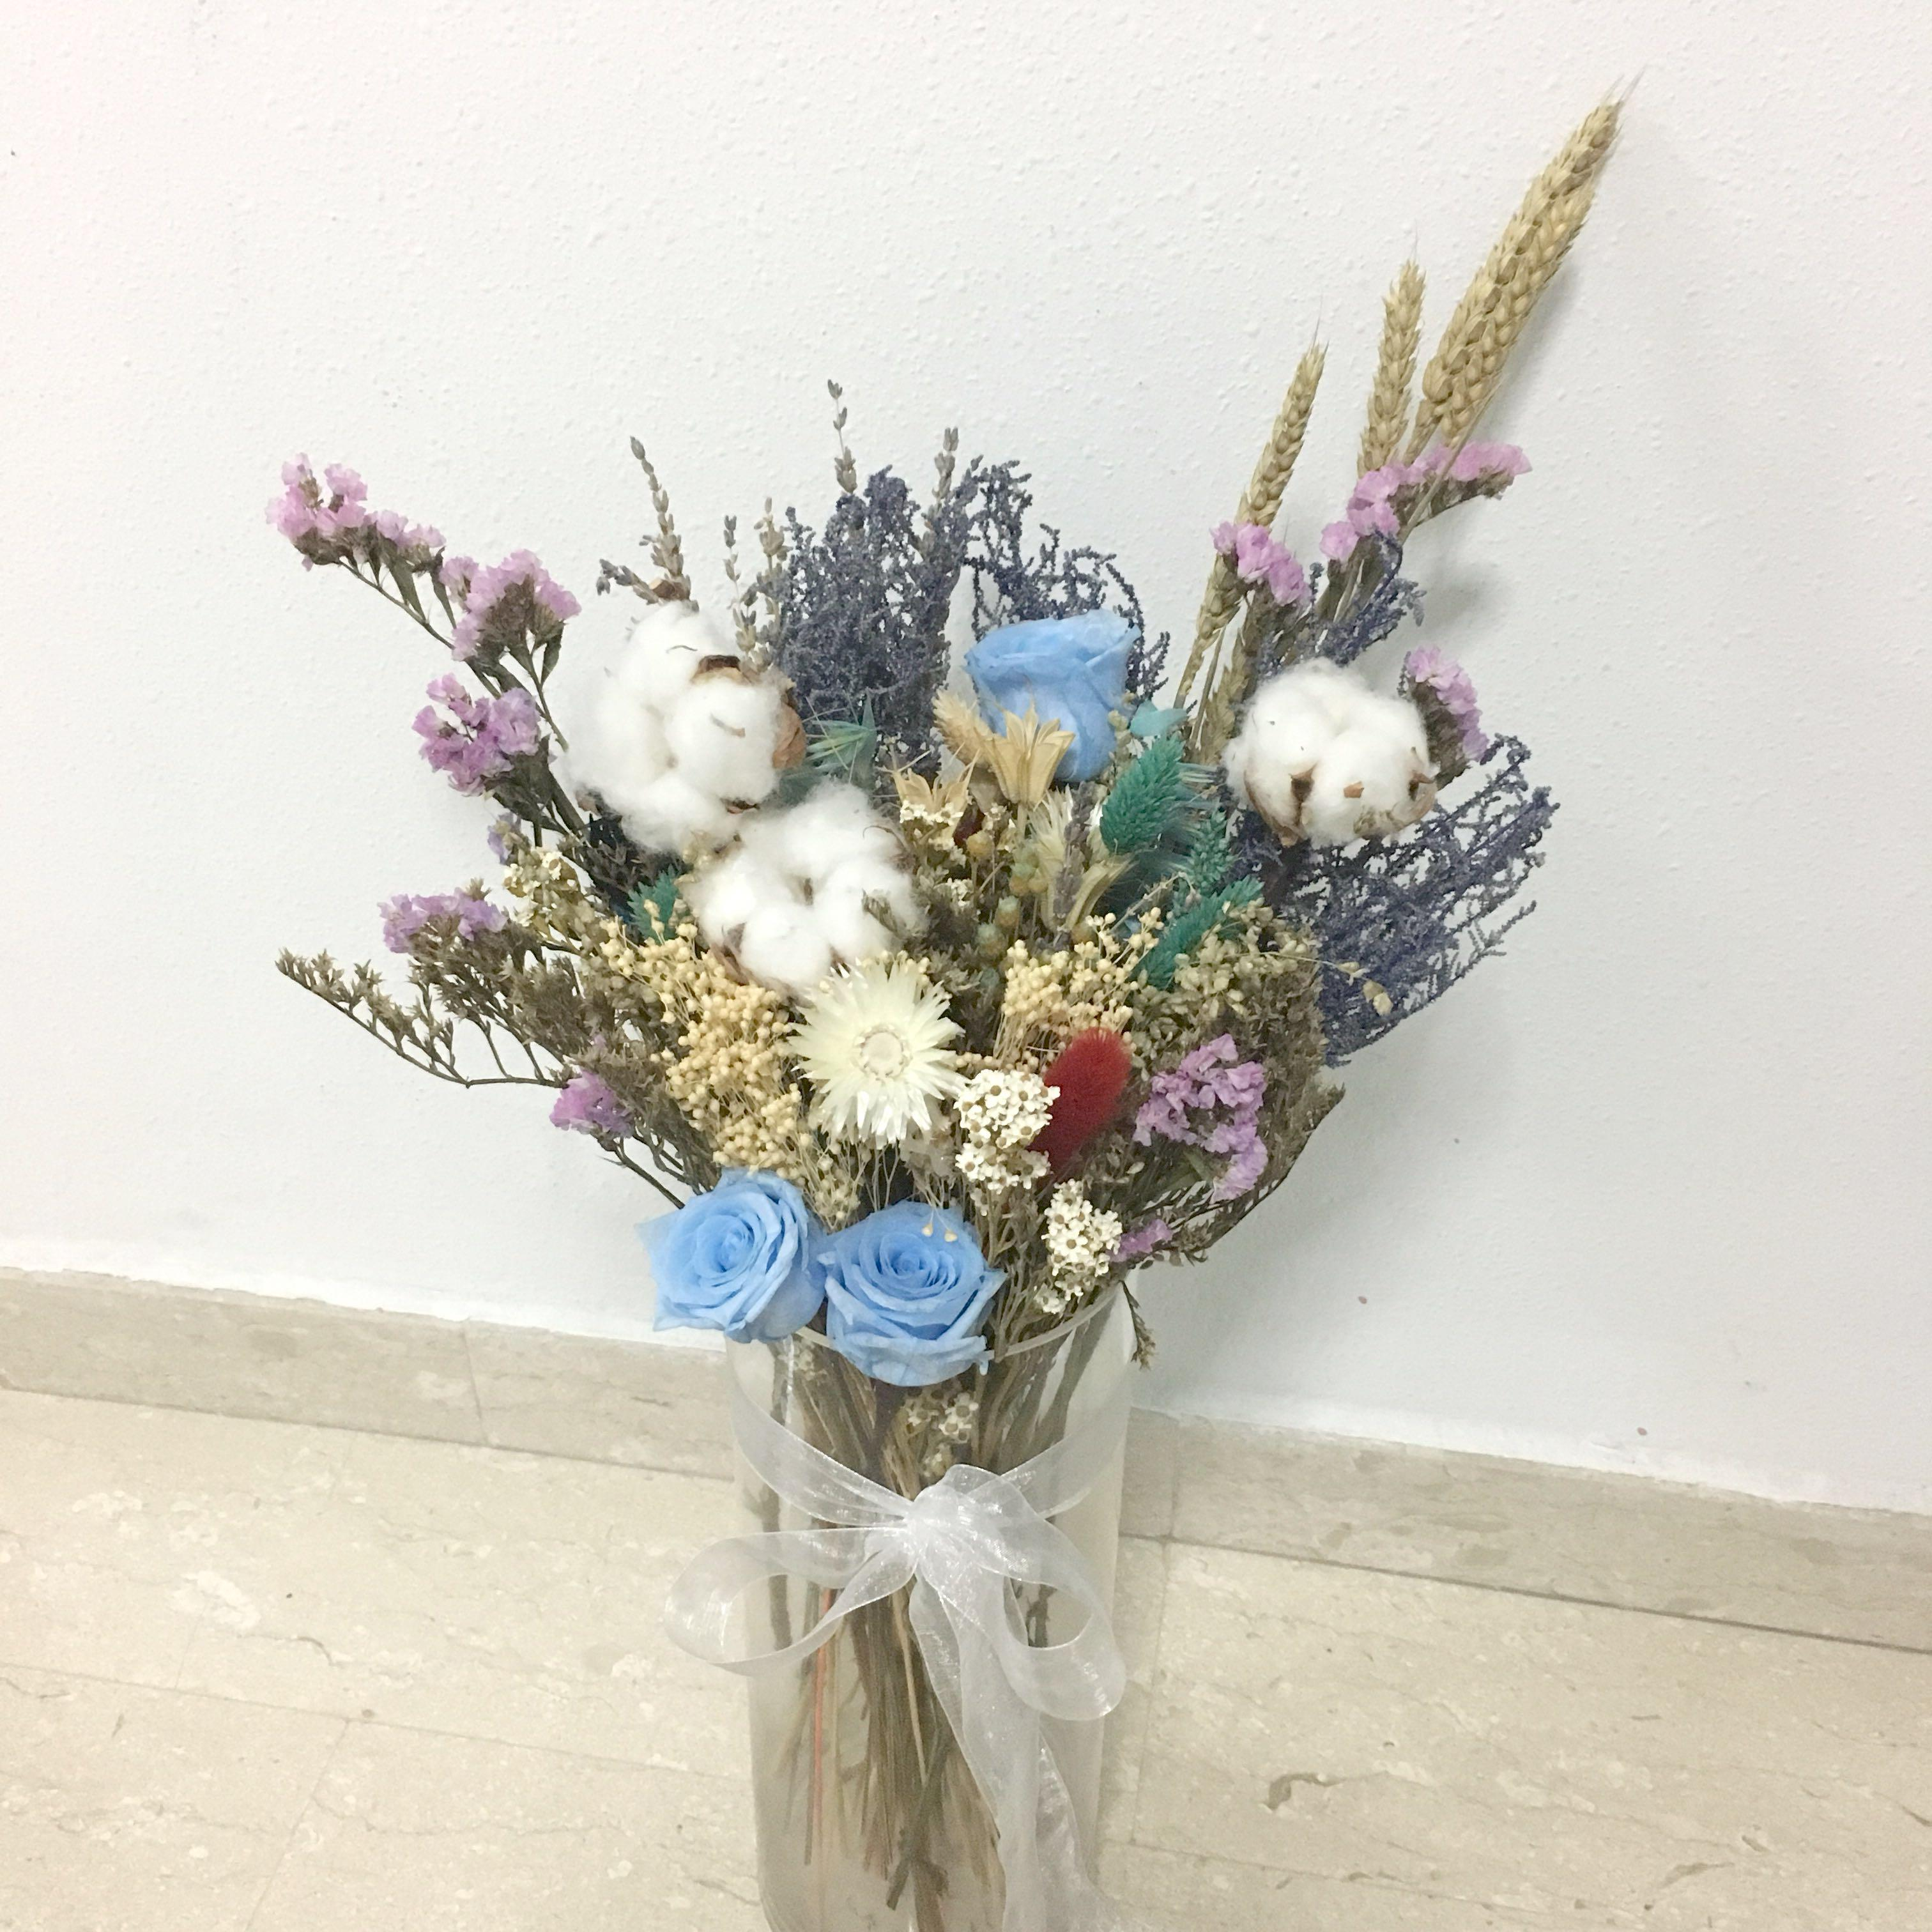 Preserved Blue Rose With Dried Flowers And Cotton Flower In A Vase Design Craft Handmade Craft On Carousell